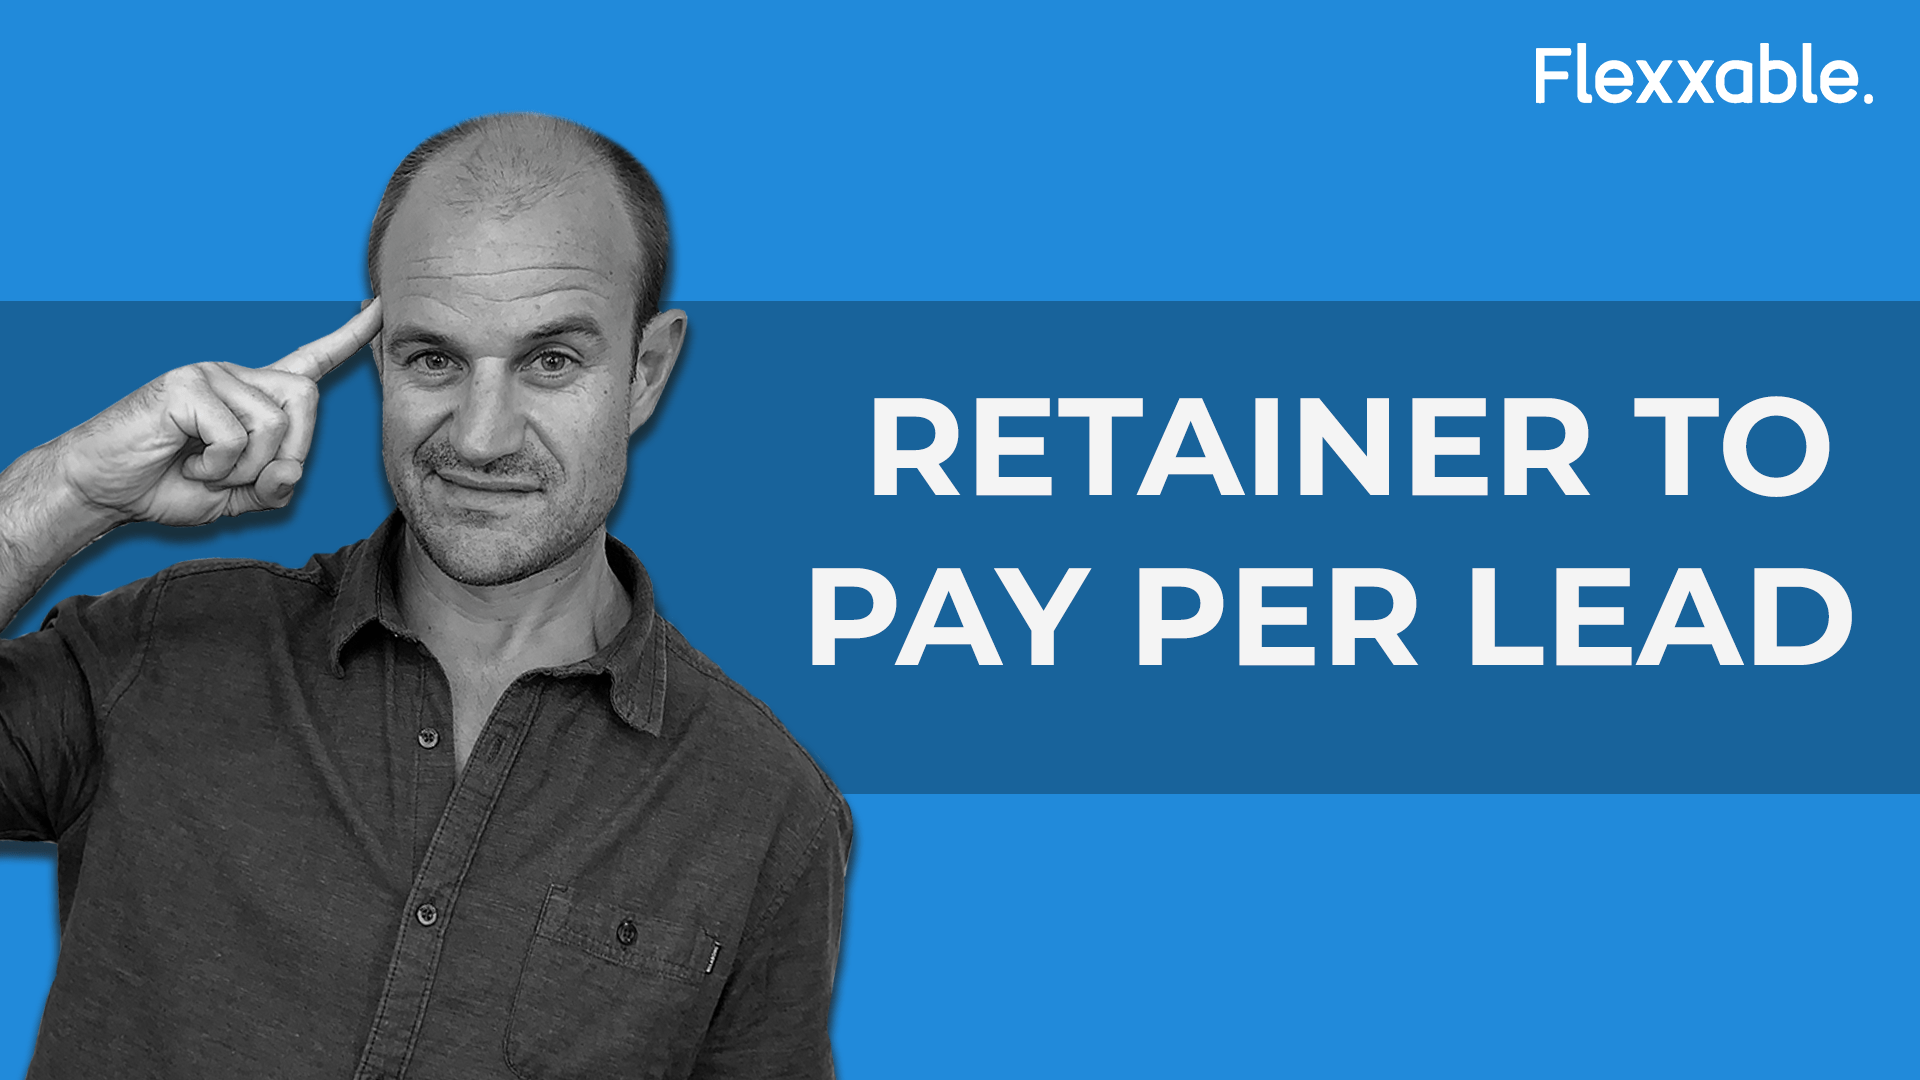 Retainer to pay per lead